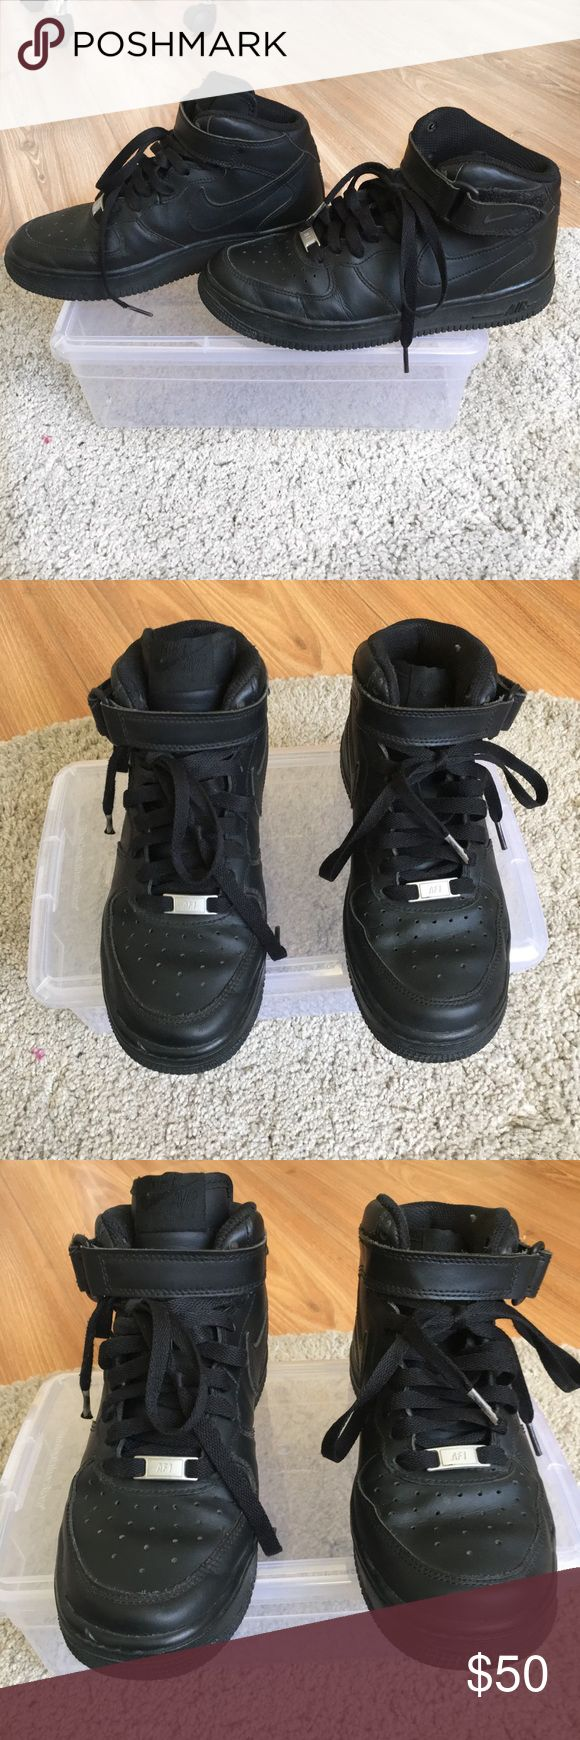 * Nike Air *  🐾  Black 37,5 US 7 Black Nike Air High Tops in size European 37,5.  💋 In Good Condition small signs of Wear in the inside and in need of new Lace/shoe strings otherwise in Great Condition as shown in the pictures. Nike Shoes Sneakers